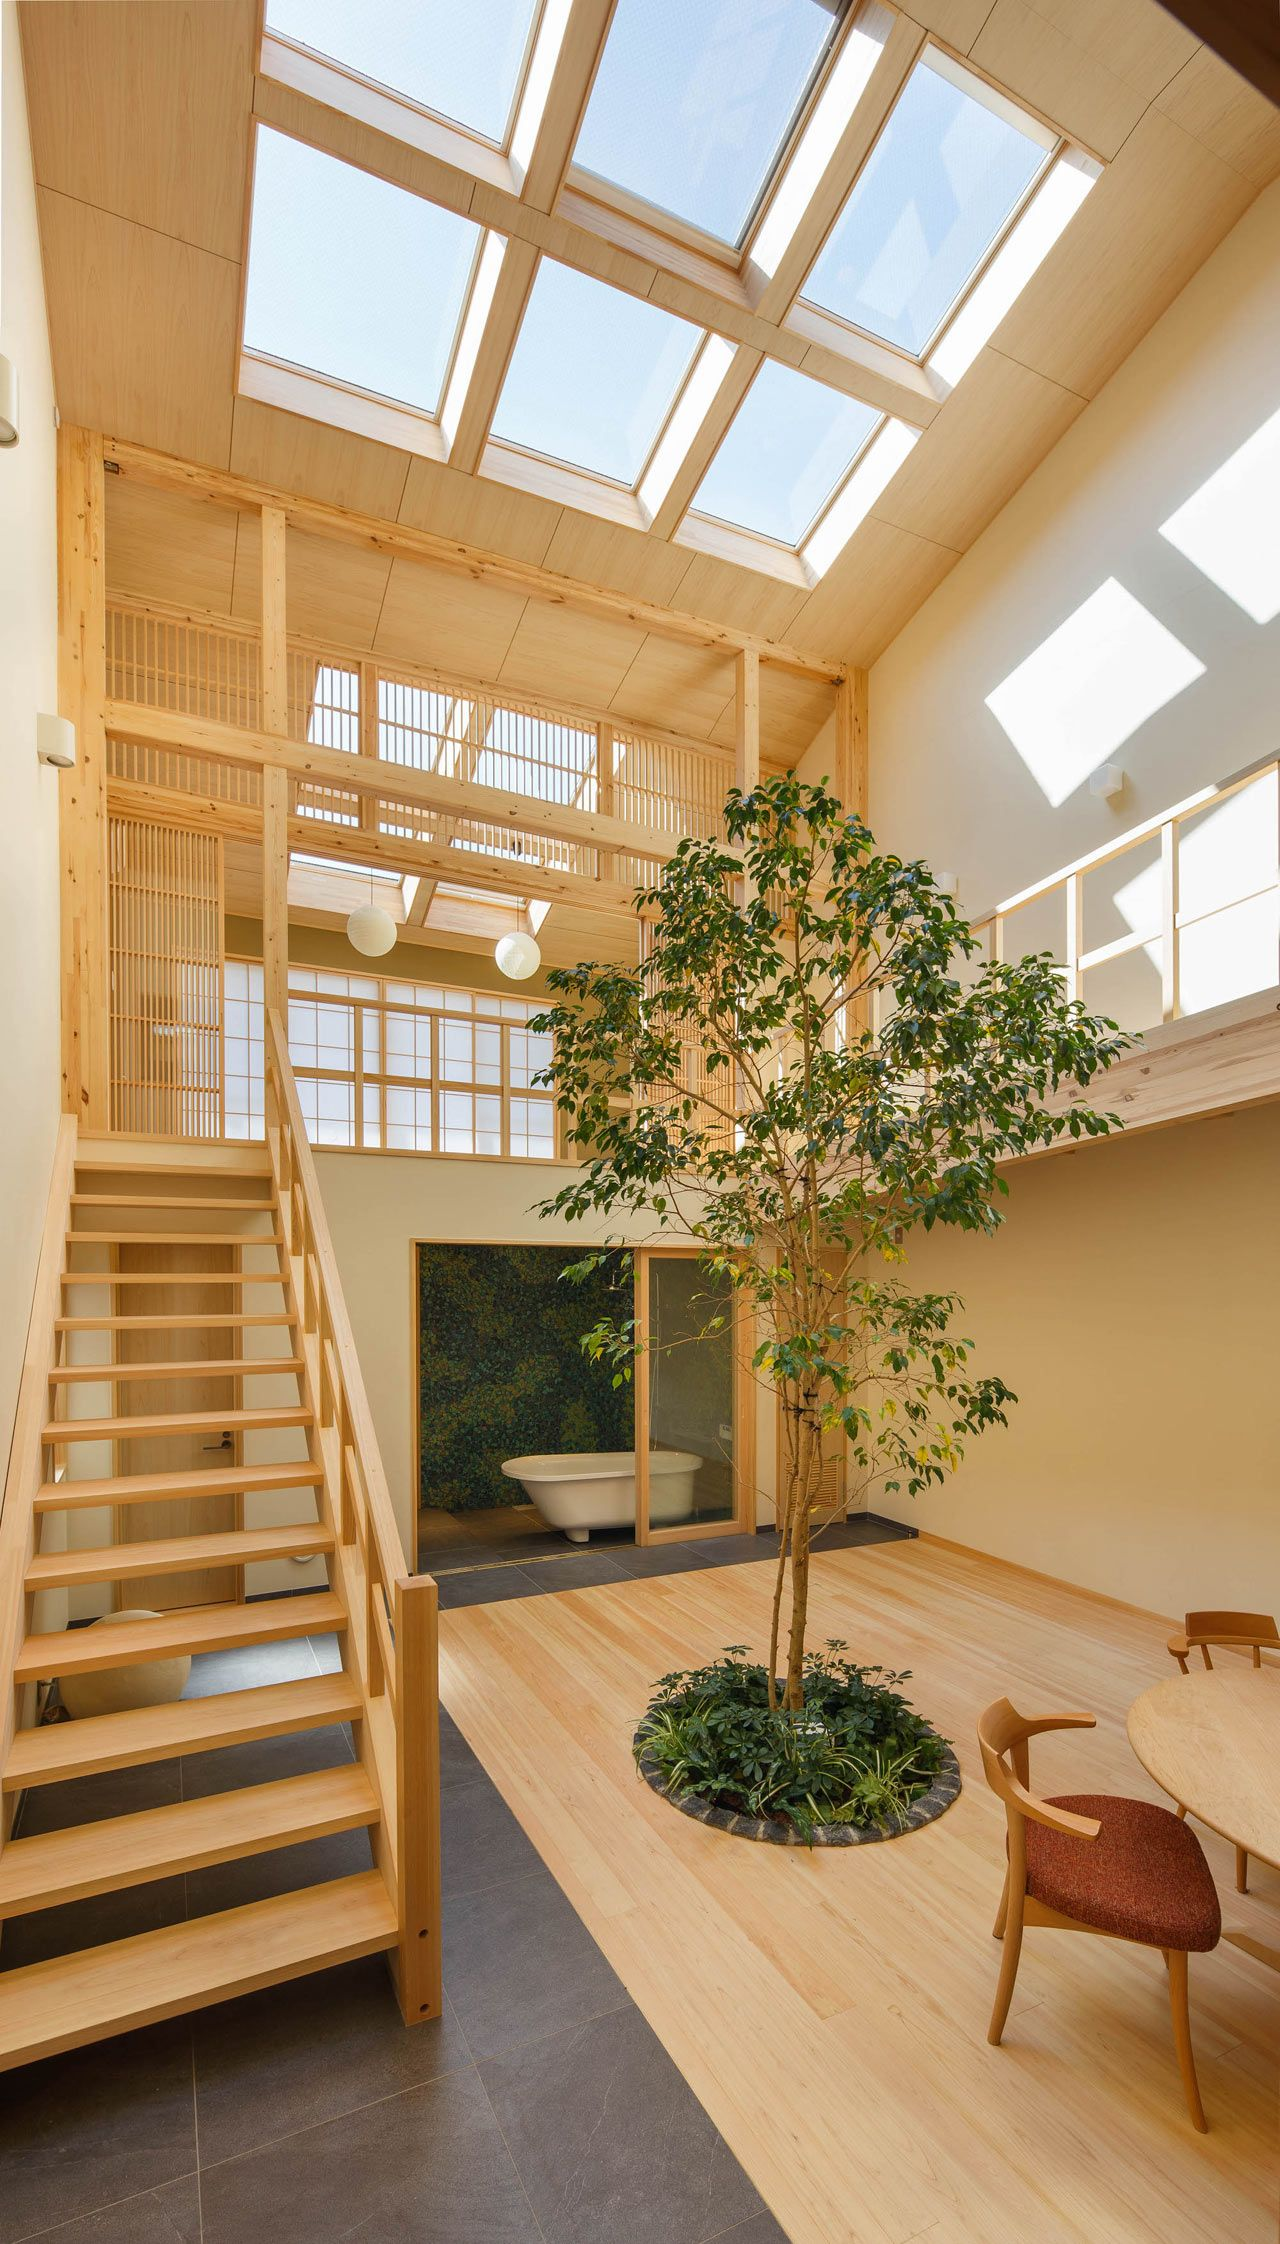 Photo of A Family House in Kyoto with a Tree Growing in the Middle